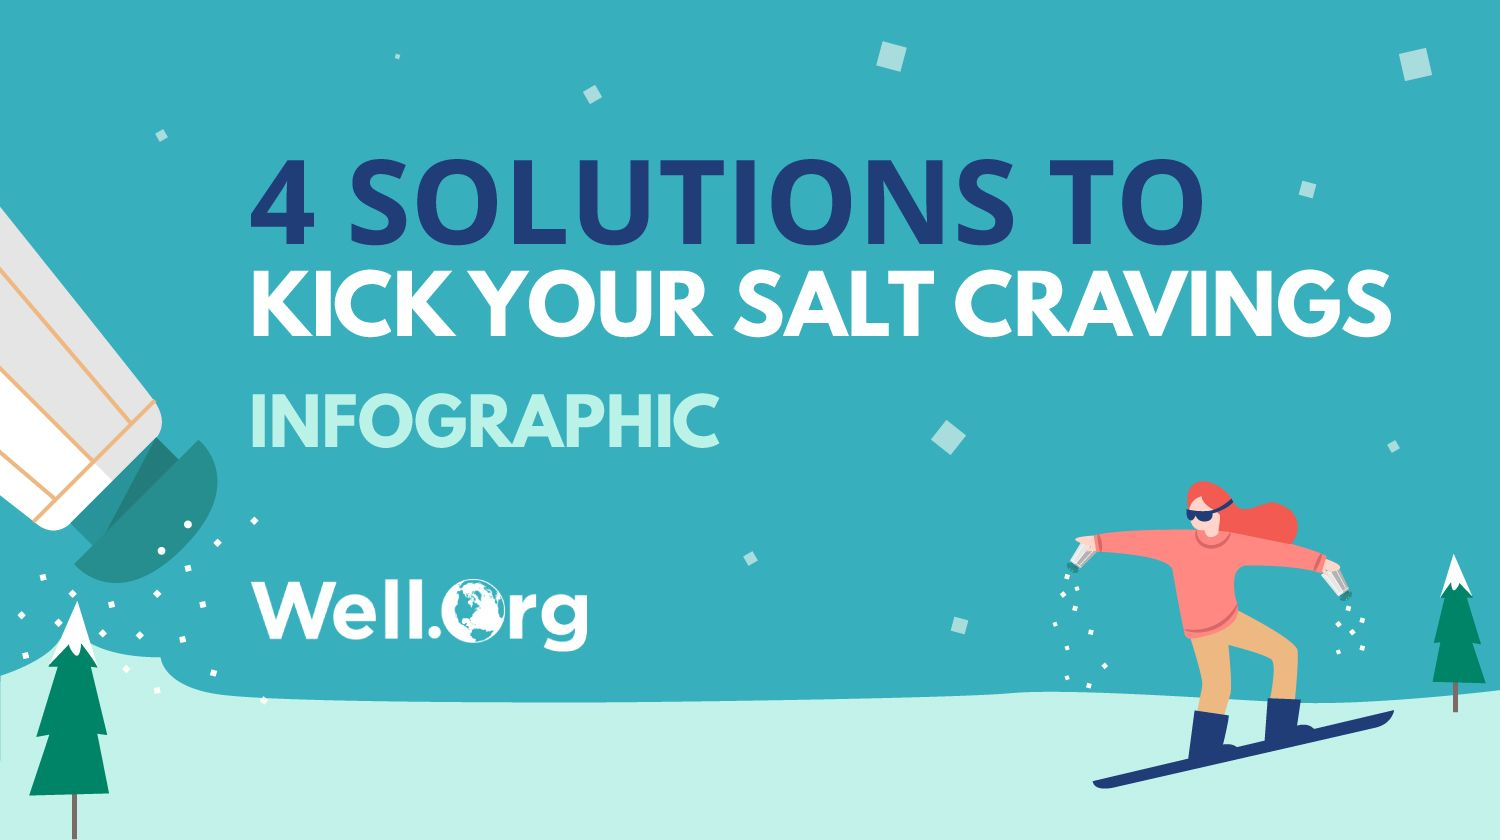 Featured | Sodium Solutions For Your Salt Cravings [INFOGGRAPHICS] | what causes salt cravings